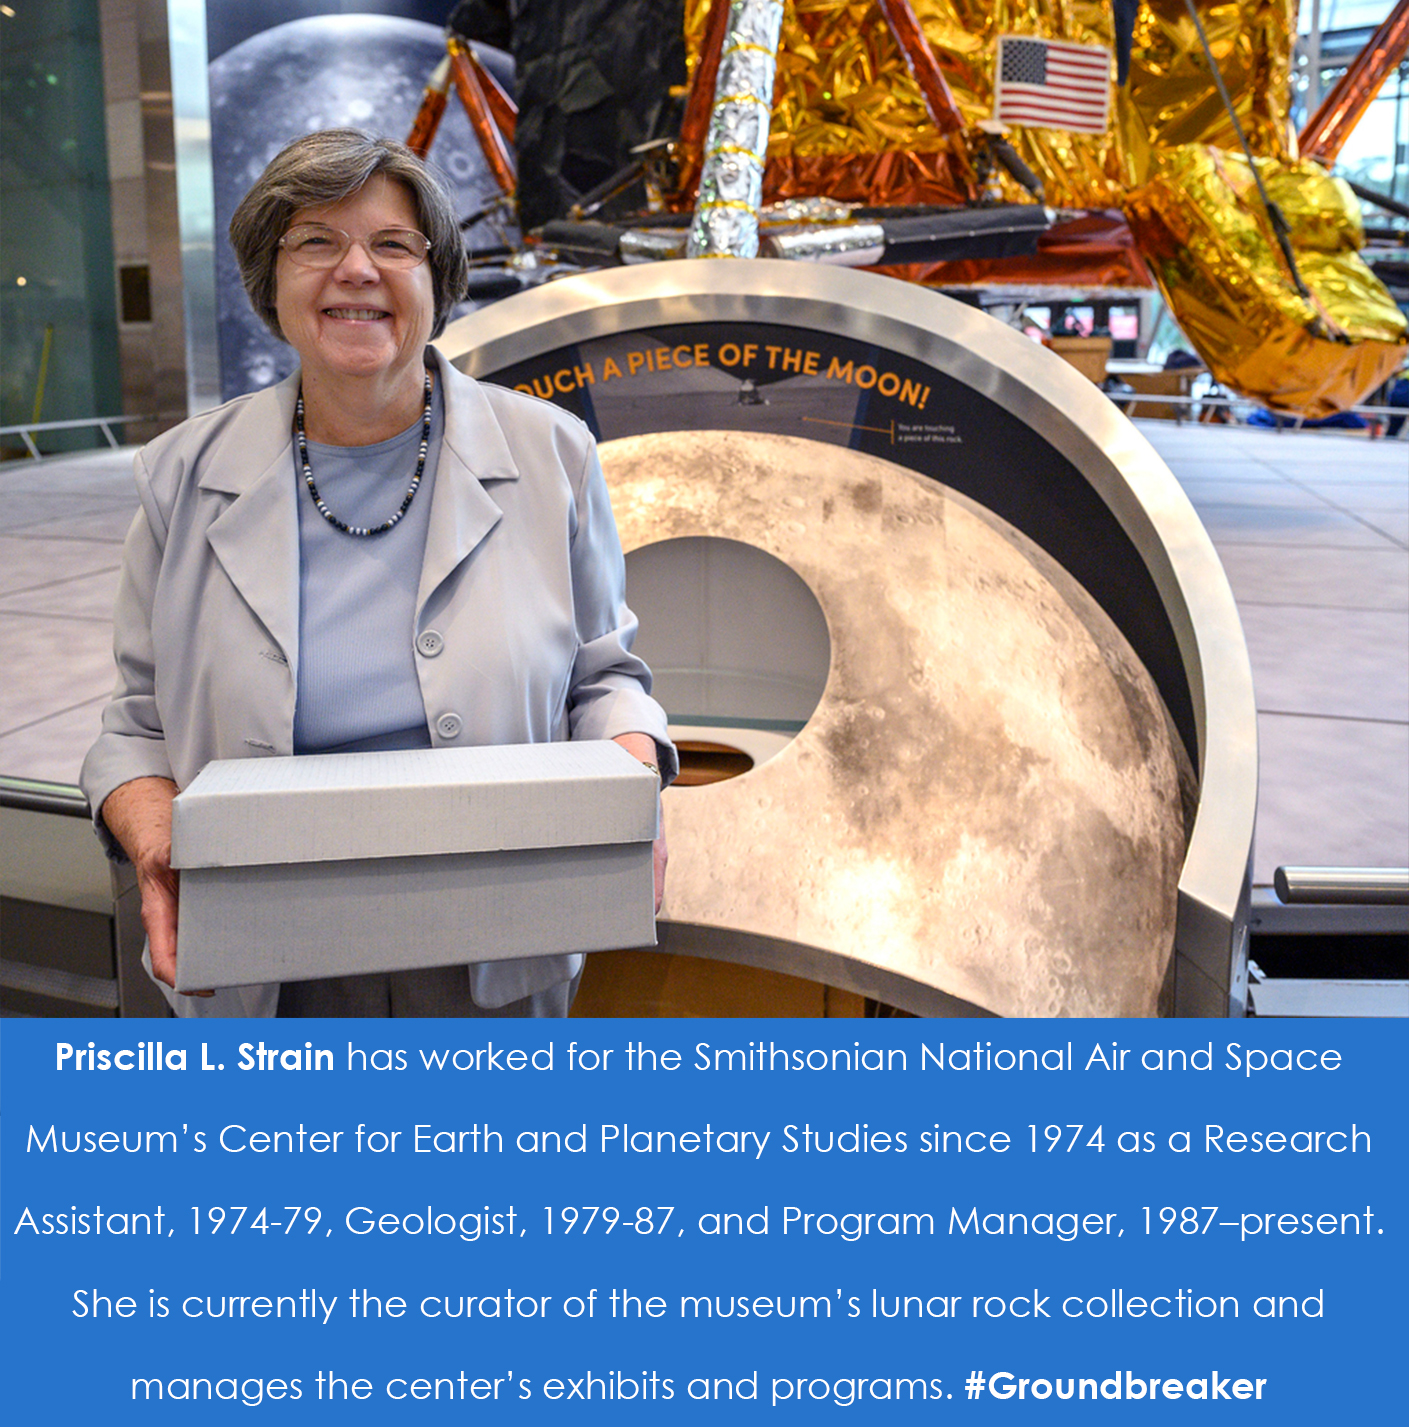 A woman holds a box and smiles at a camera. She is standing in front of a lunar rock sample.